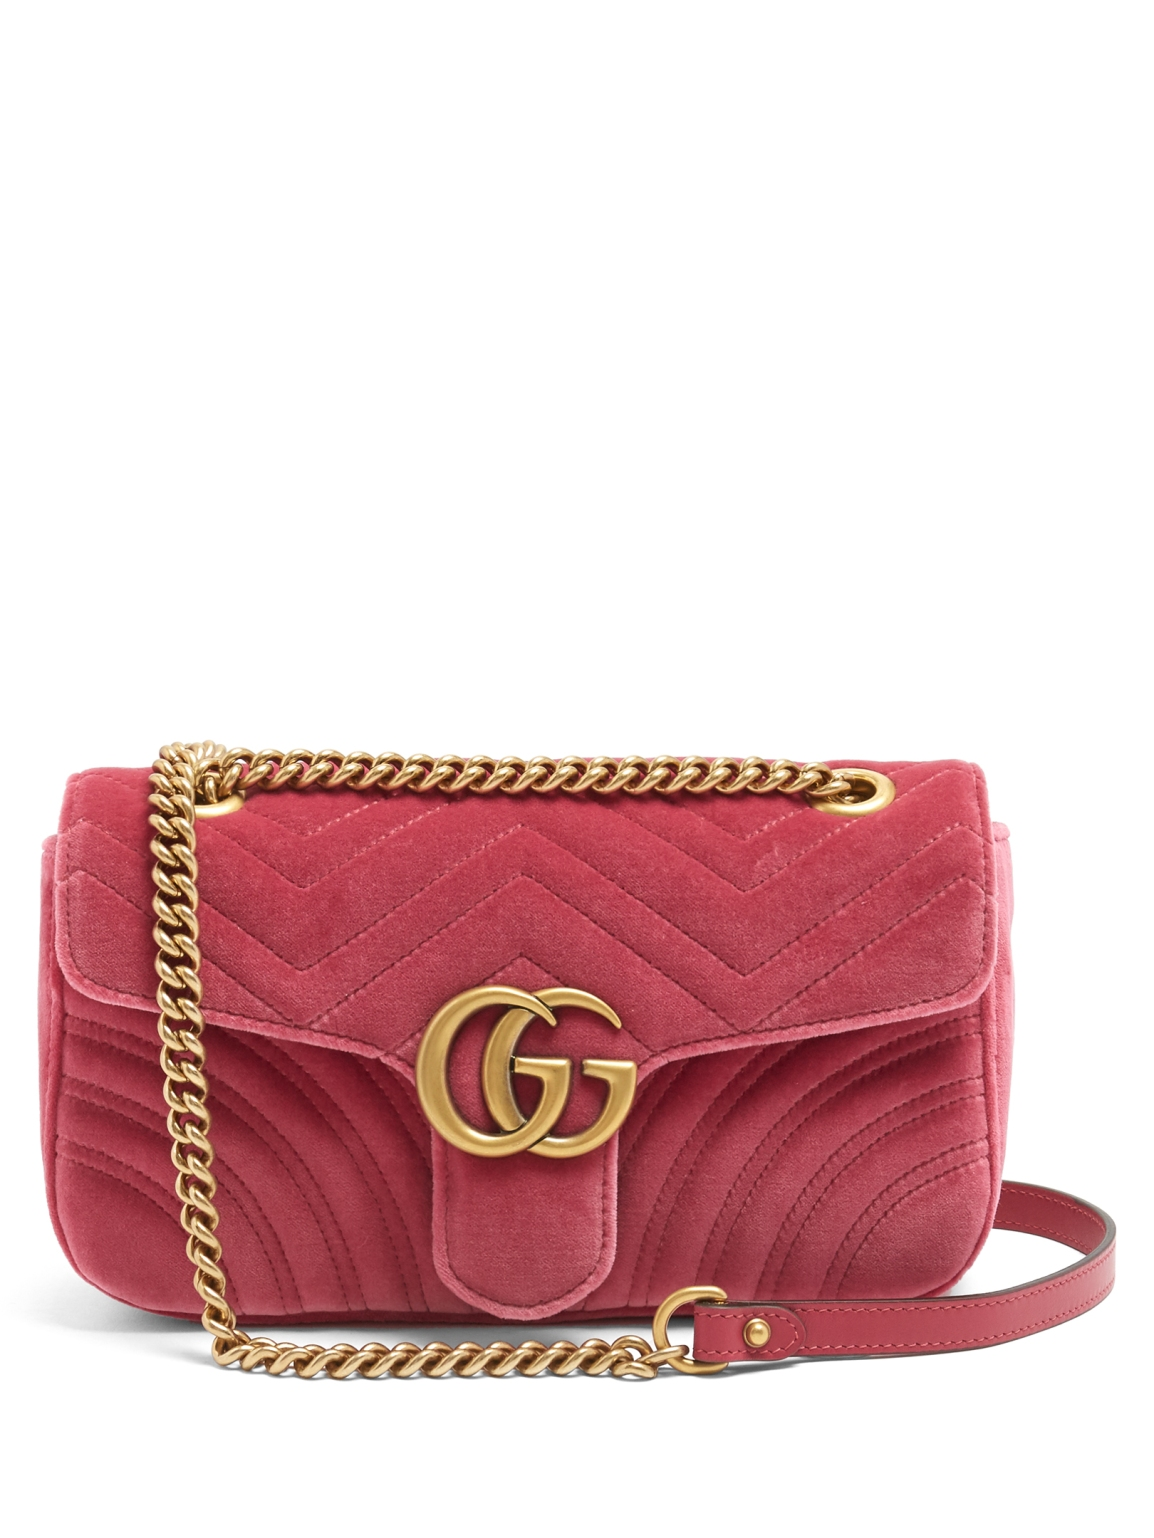 GG Marmont small quilted-velvet cross-body bag.jpg